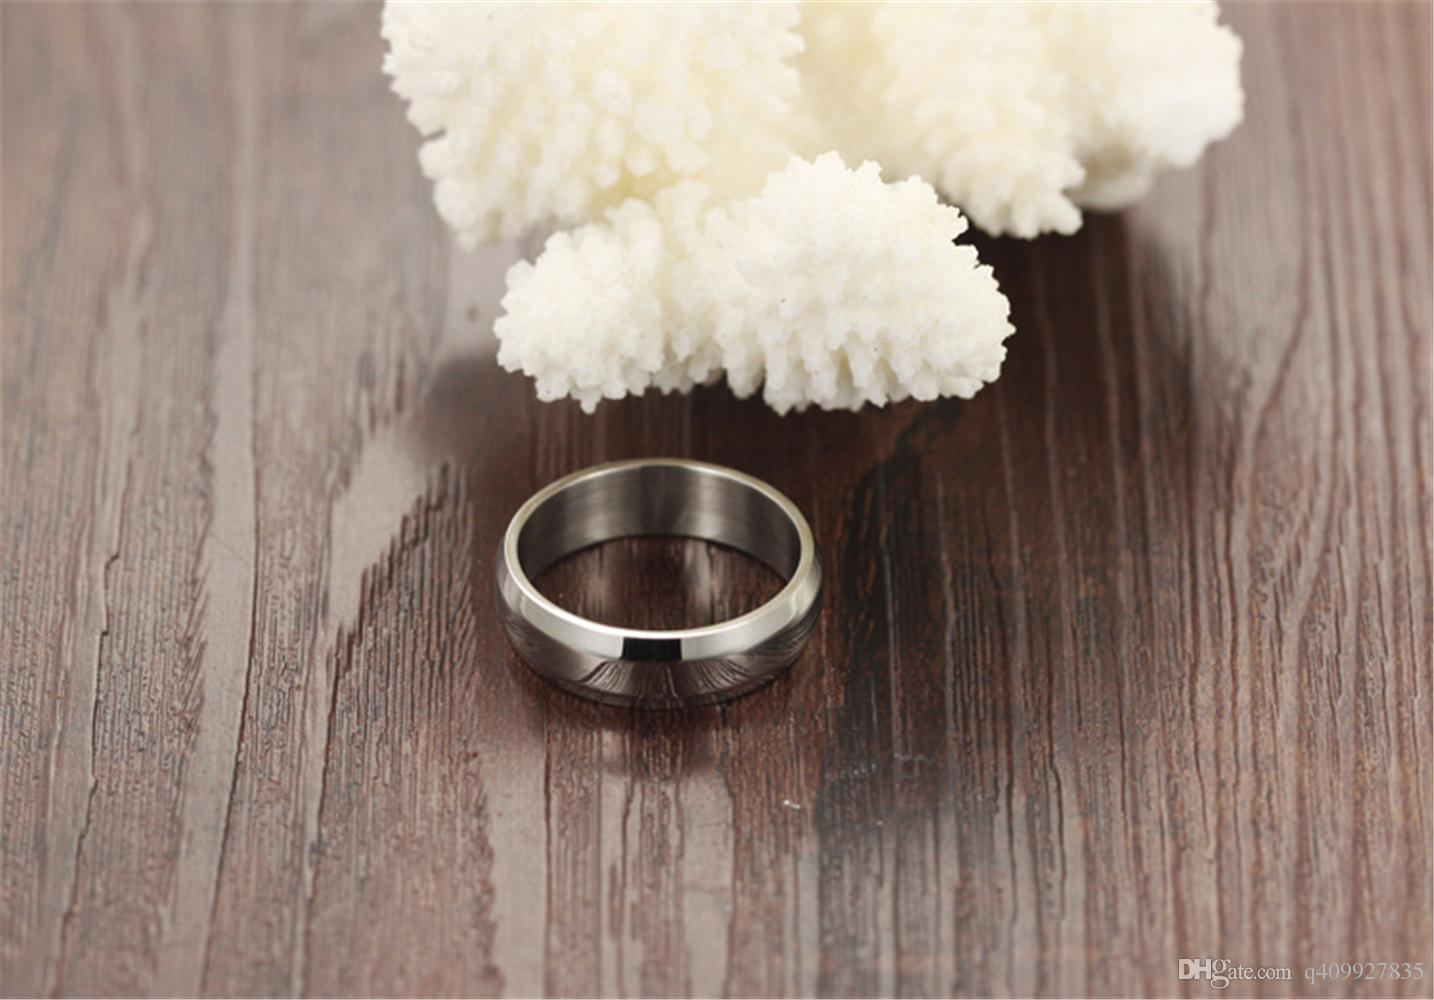 Fashion Day Jewelry Hotest design wedding ring stainless steel ladies rings High Polished Beveled Edges Band